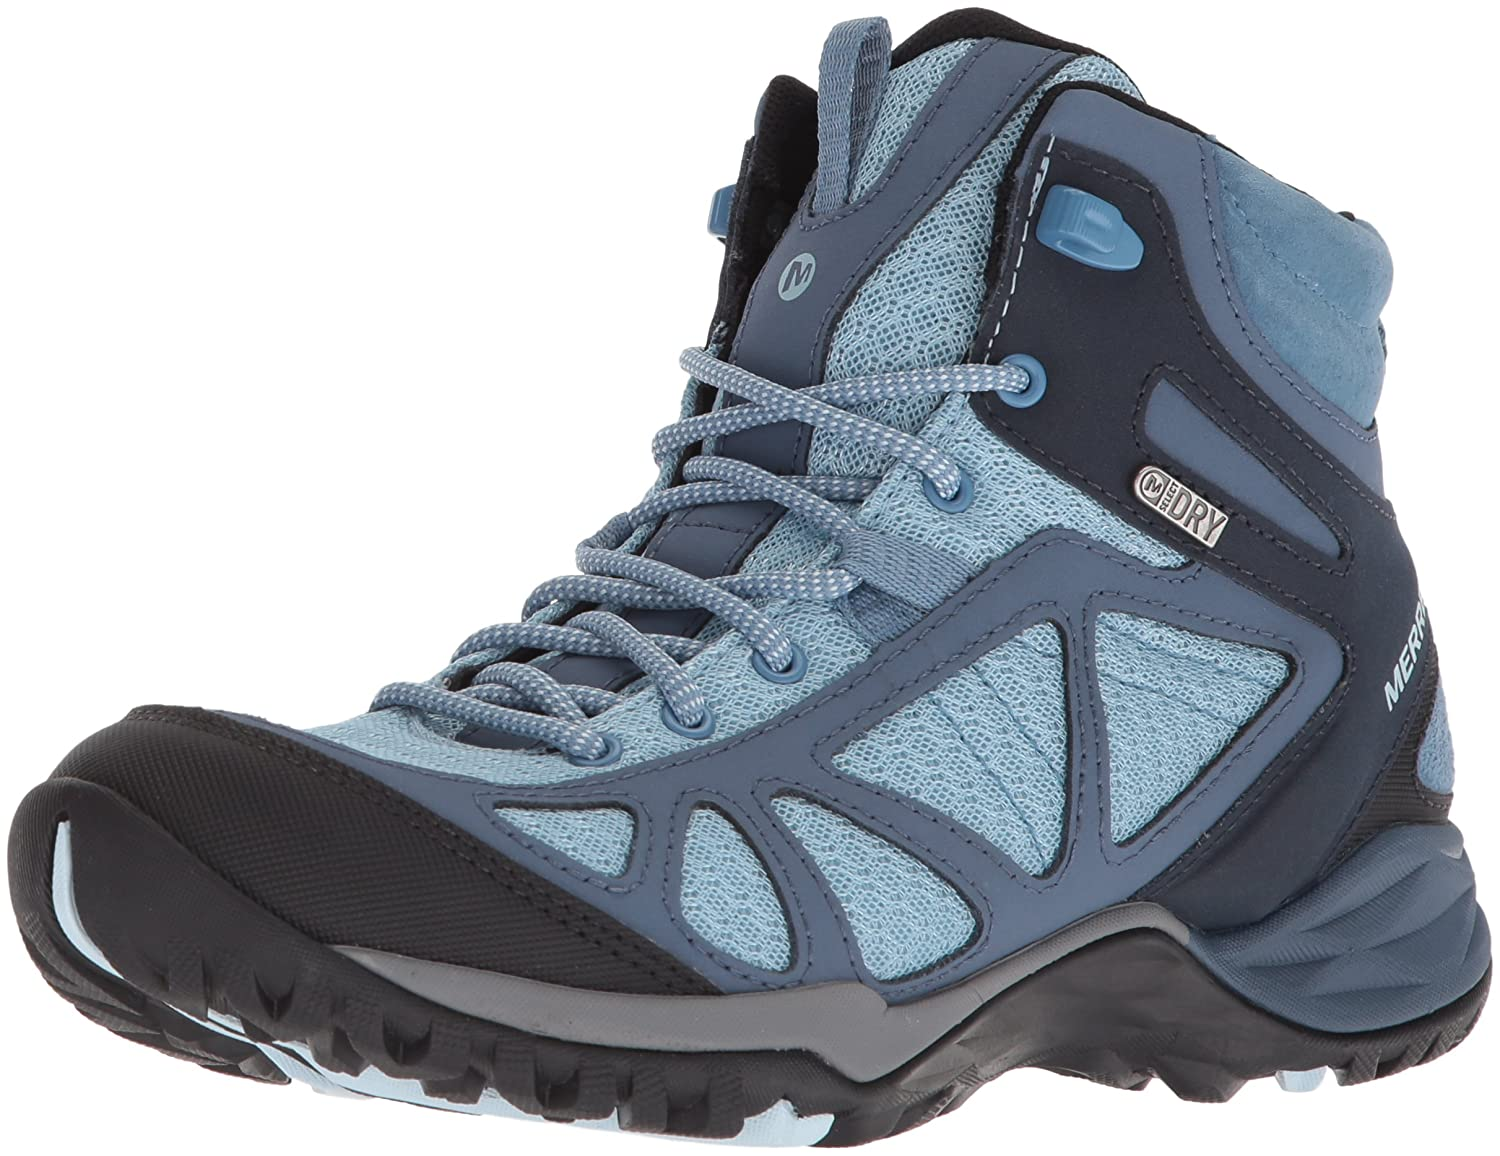 Merrell Women's Siren Sport Q2 Mid Waterproof Hiking Boot B0725R6LR4 5.5 B(M) US|Blue